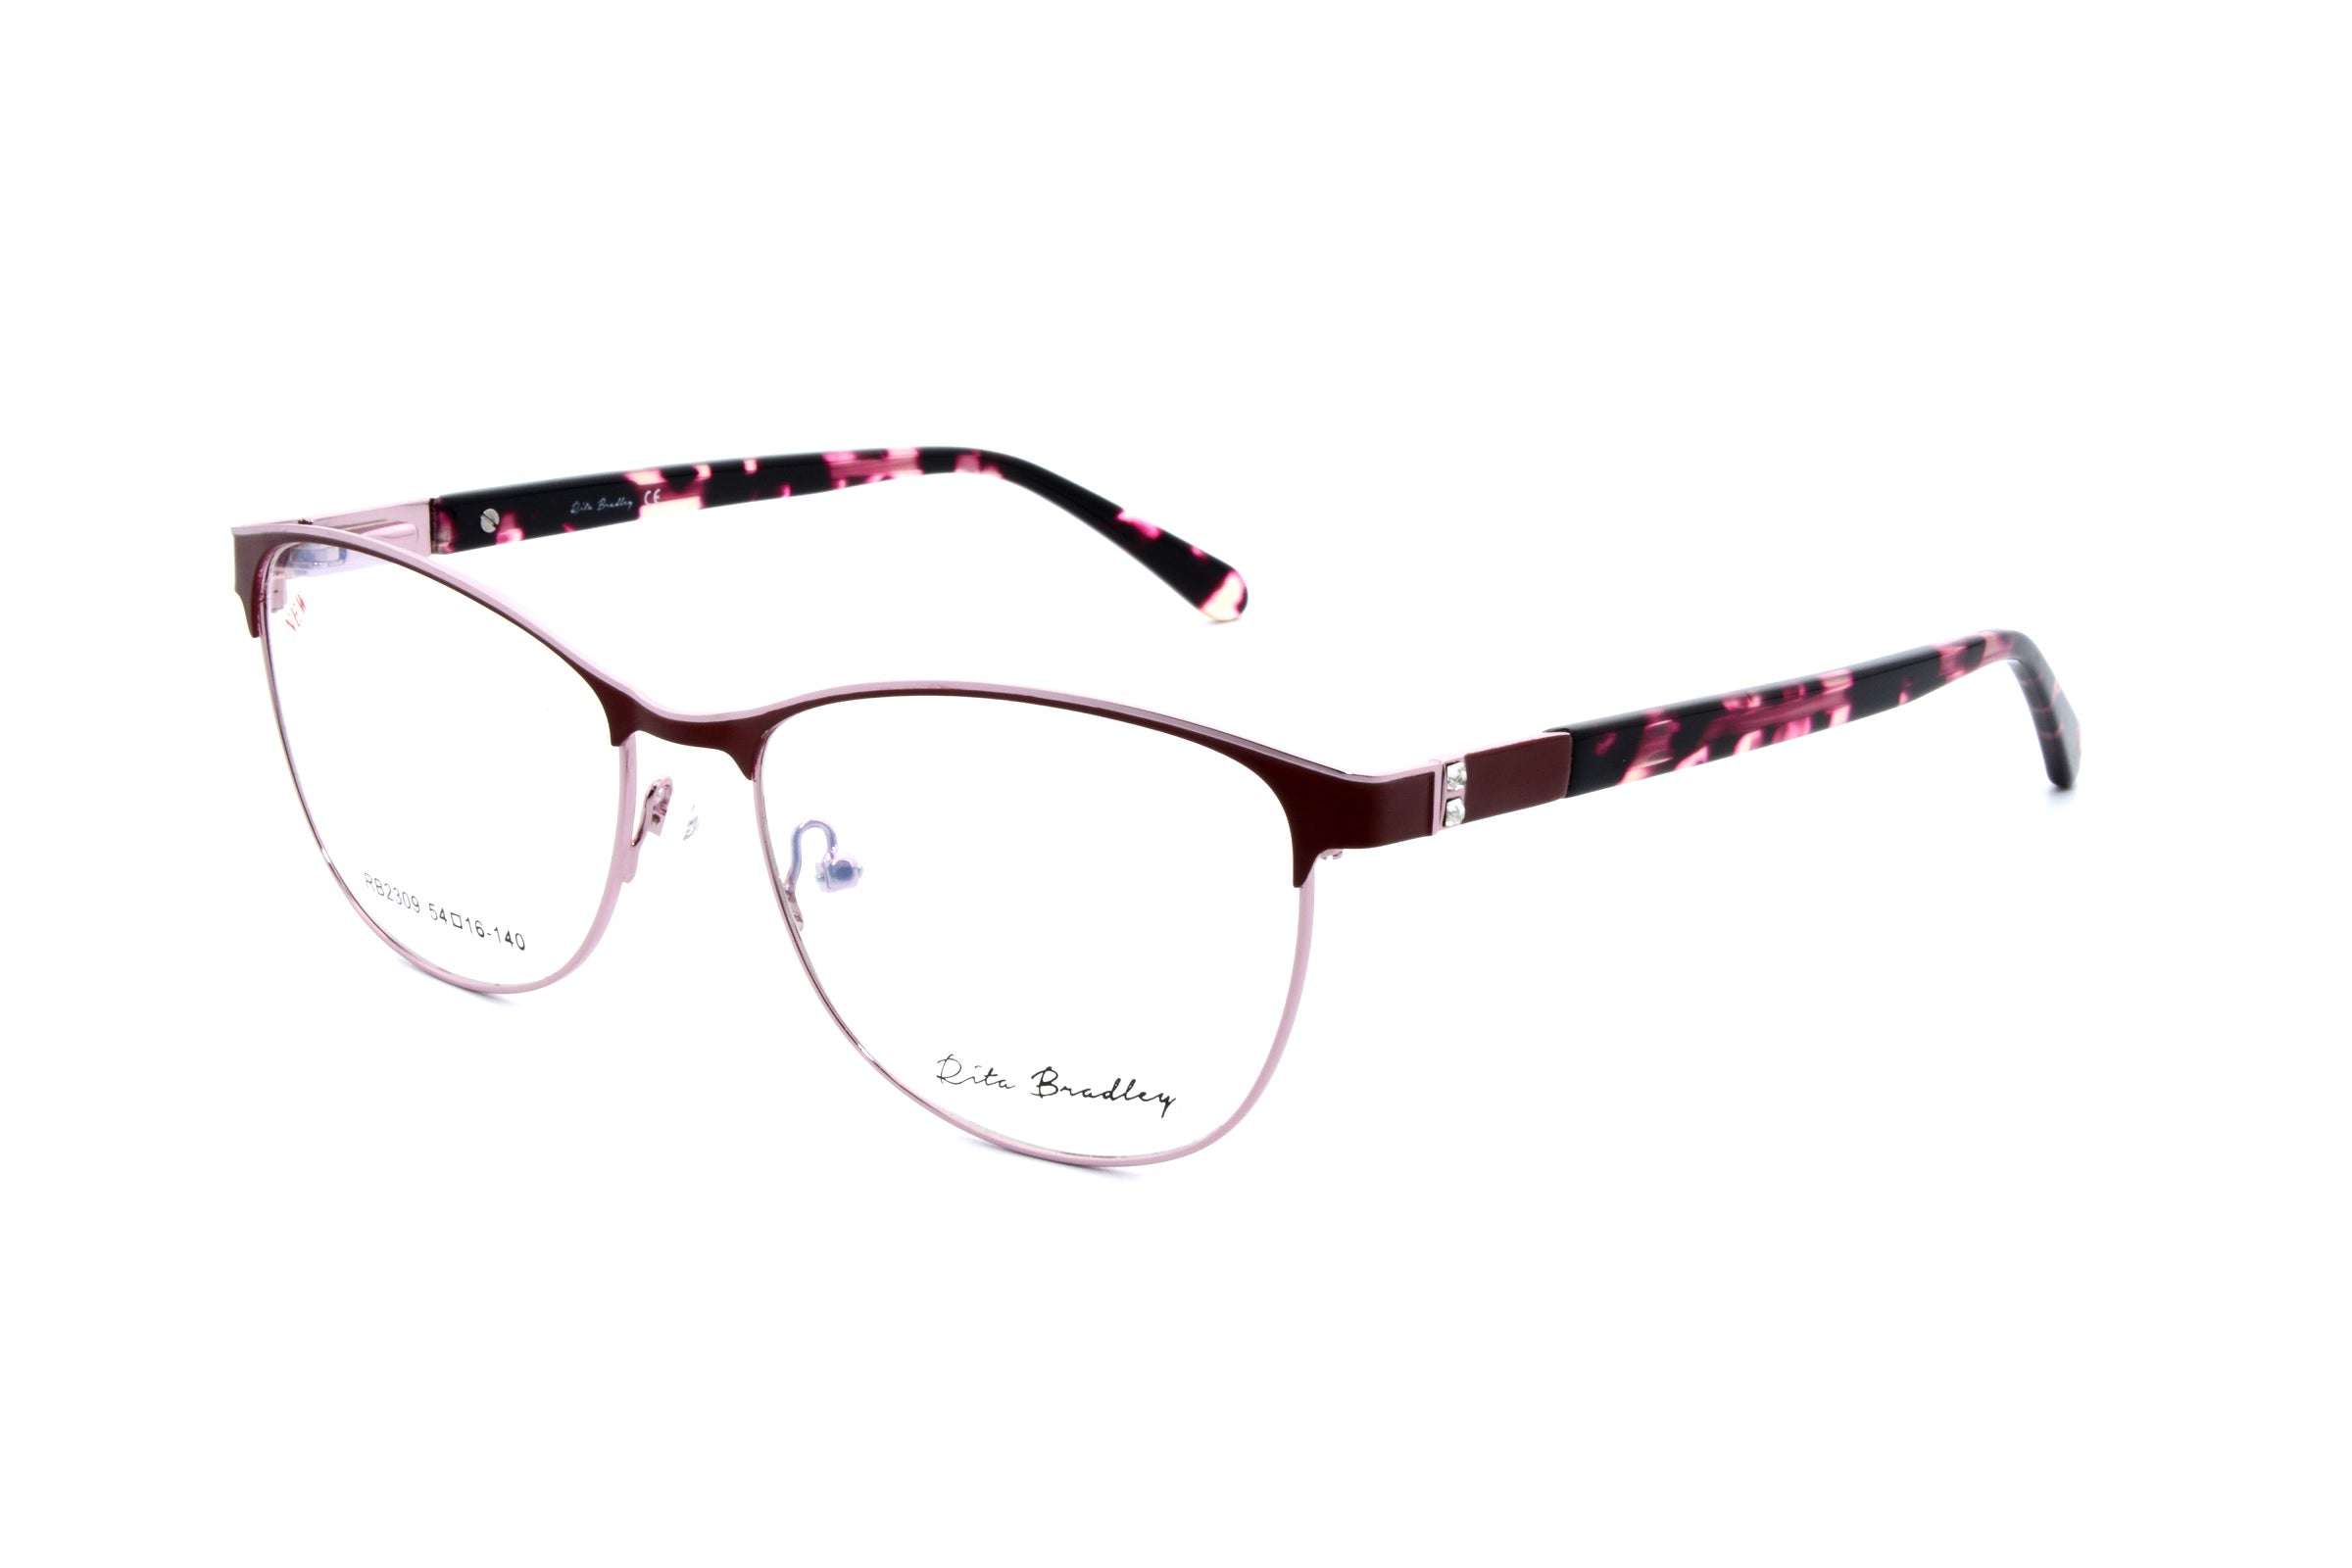 Rita Bradley eyewear 2309, C12 - Optics Trading